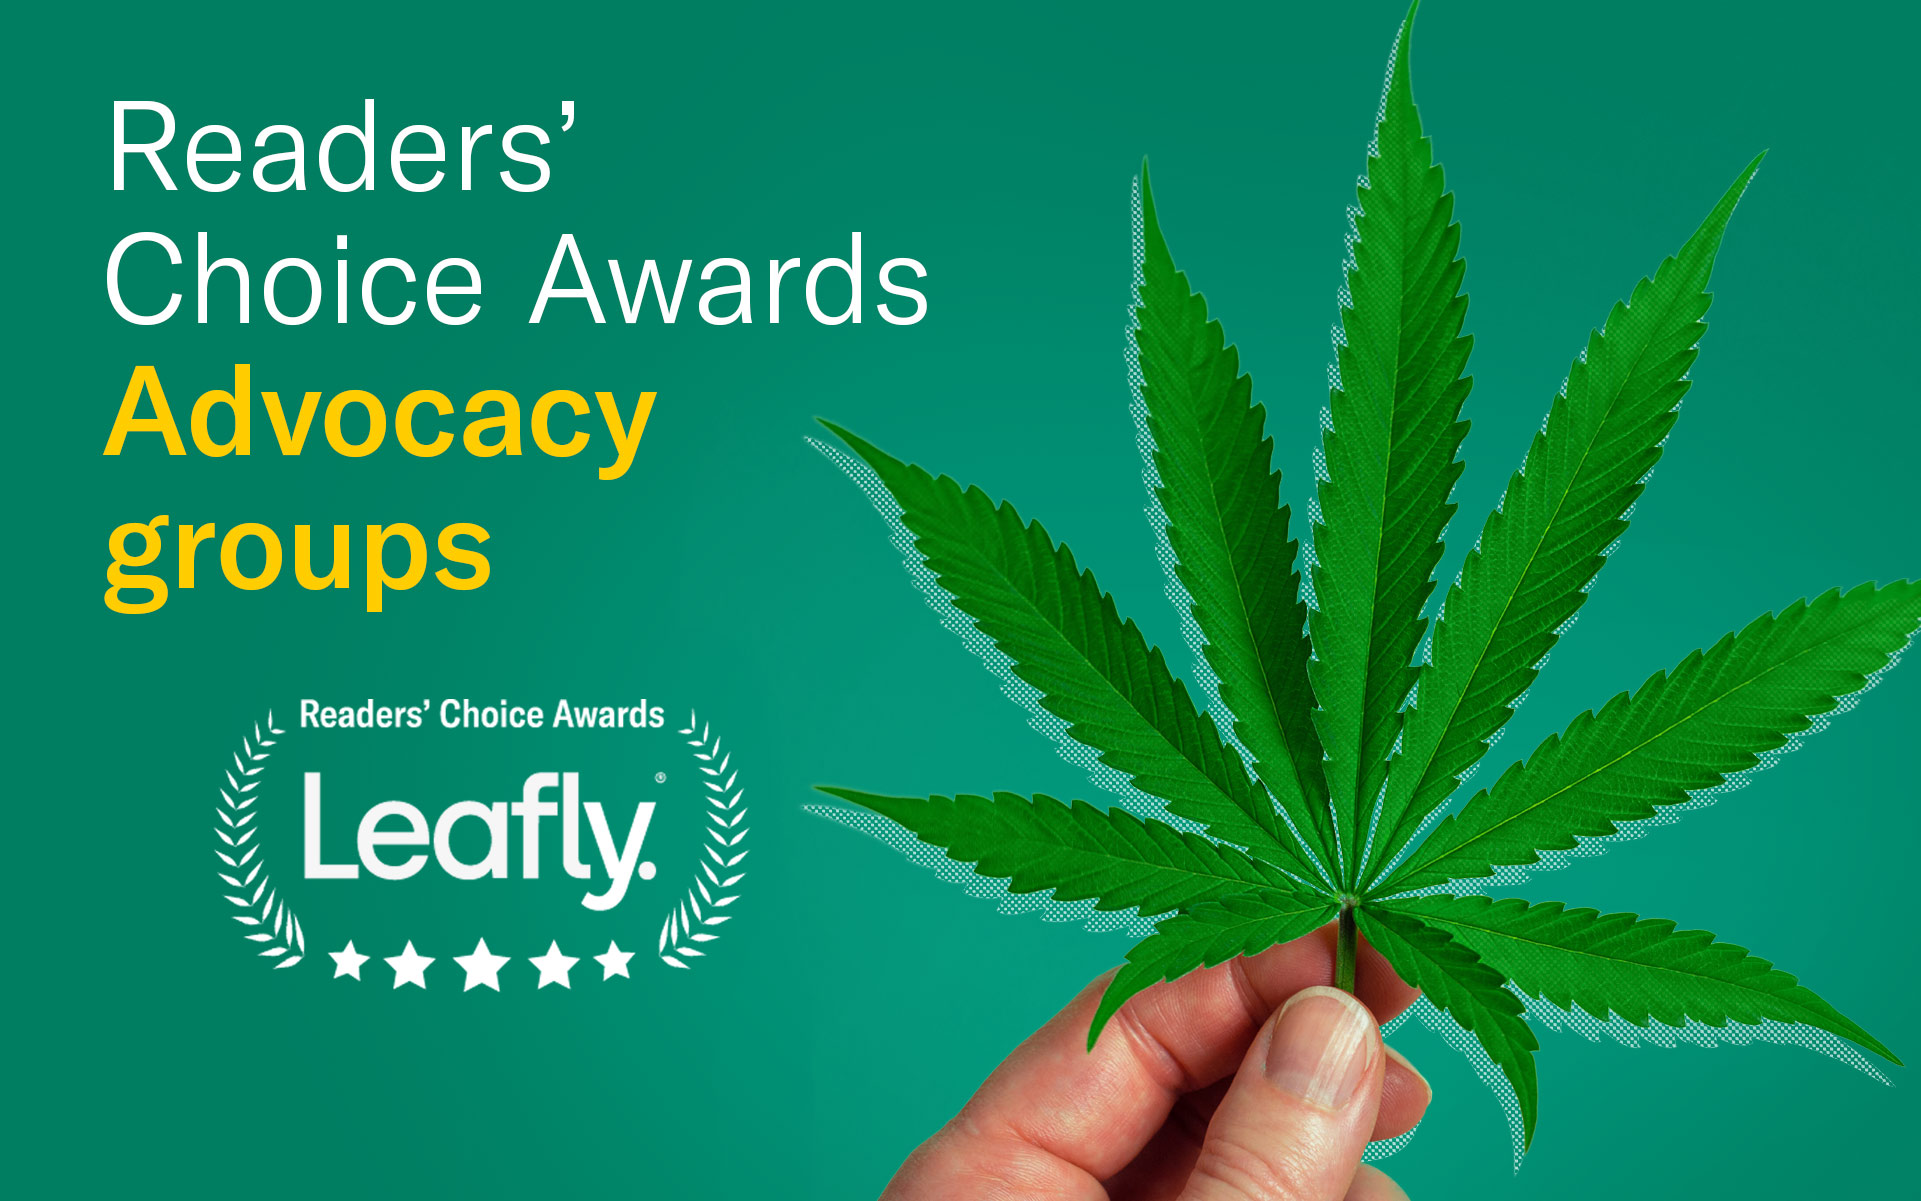 leafly canada readers choice advocacy groups